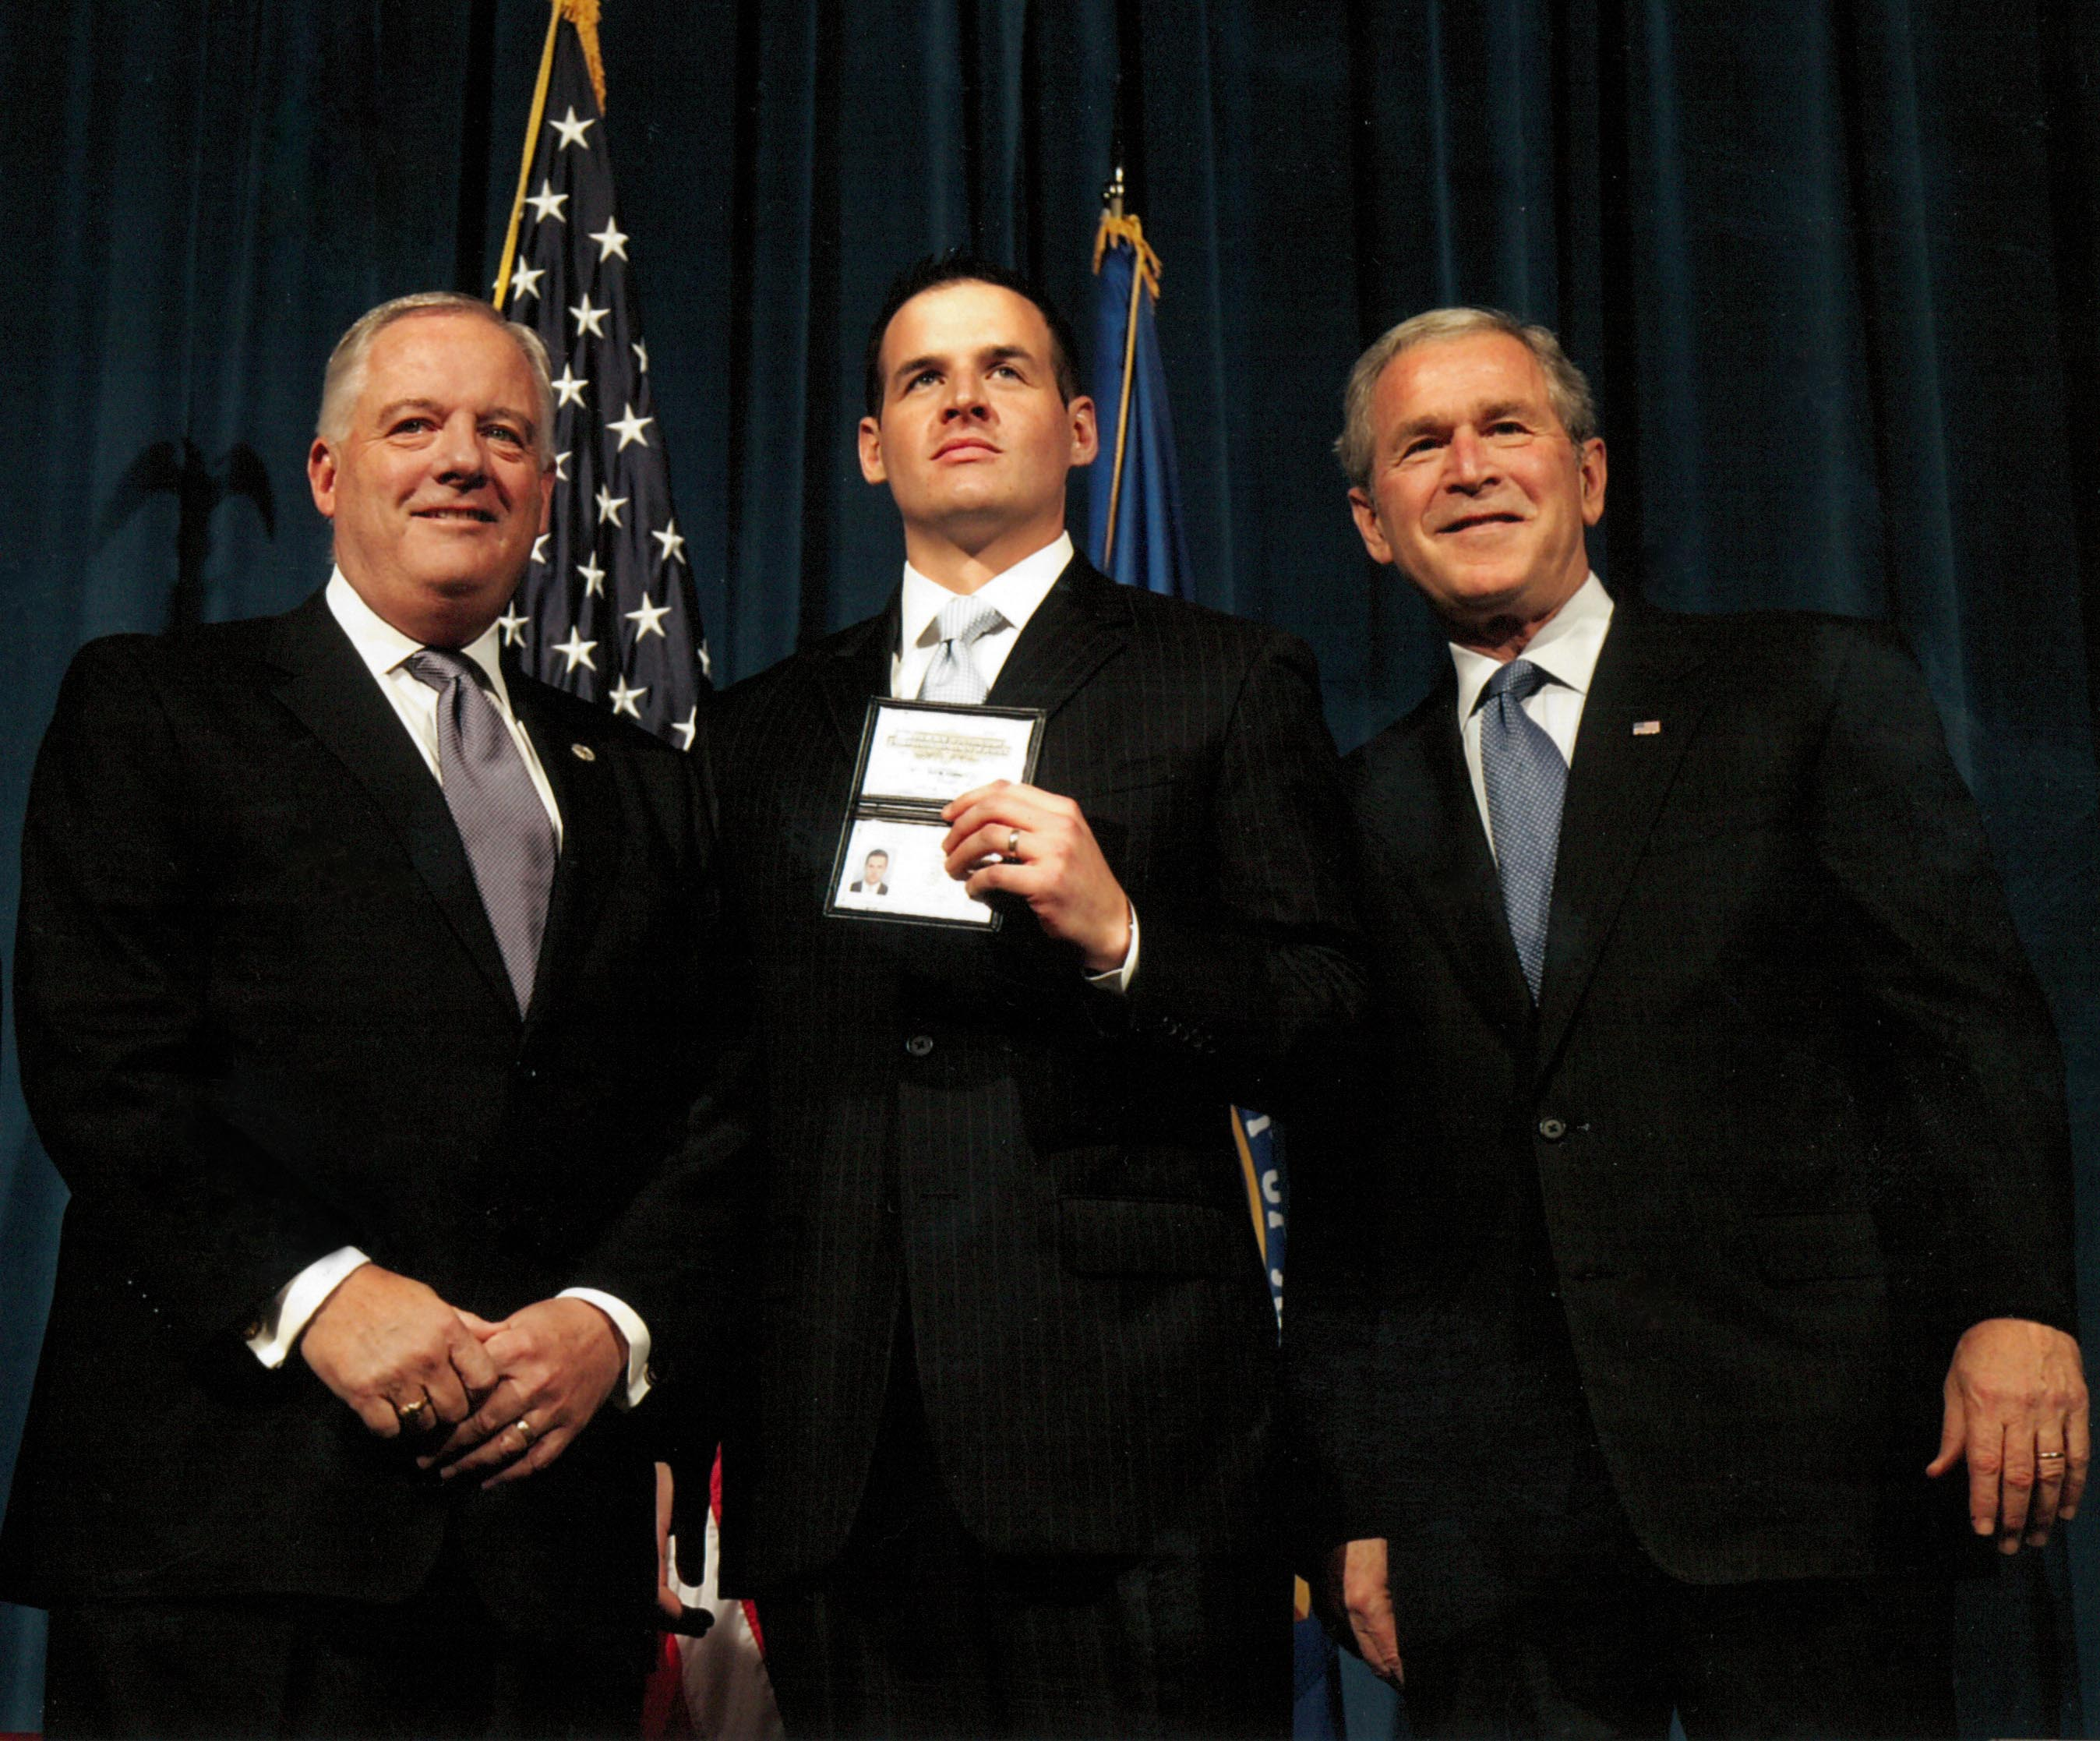 Kenney and son Brendan with President George W. Bush on the occasion of Brendan's induction into the FBI.